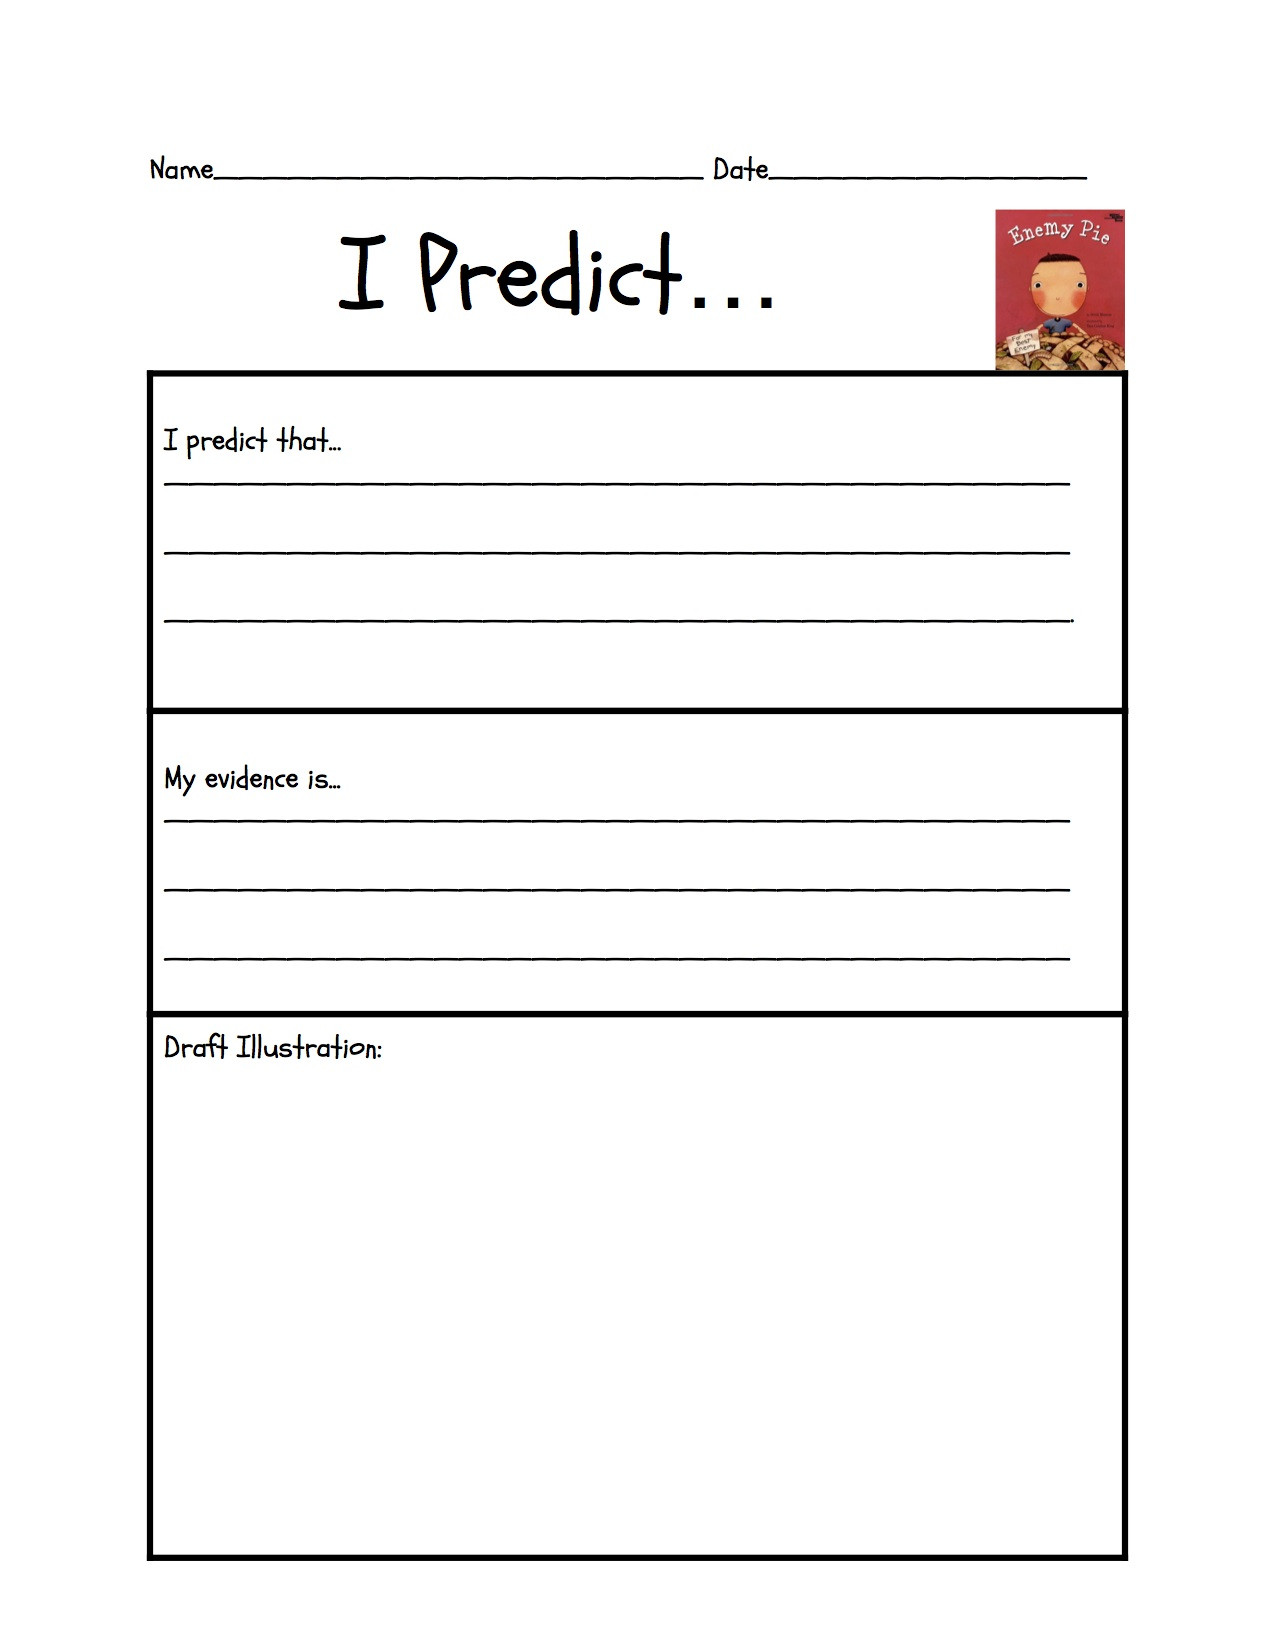 Making Predictions Worksheets 3rd Grade Story Predictions Worksheets